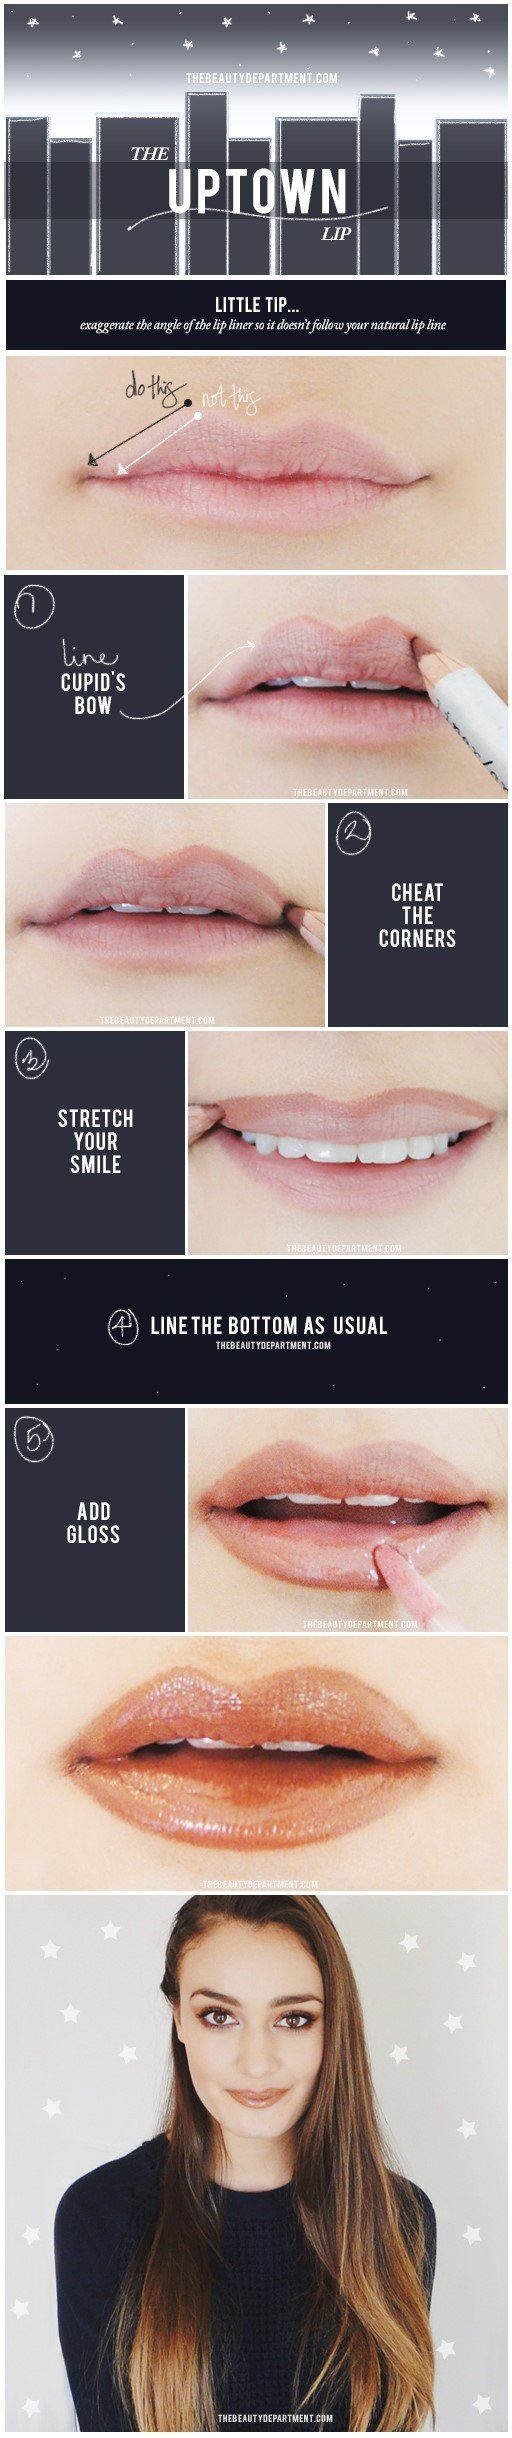 15 Tricks and Hacks to Make Your Lips Look Fuller and Bigger